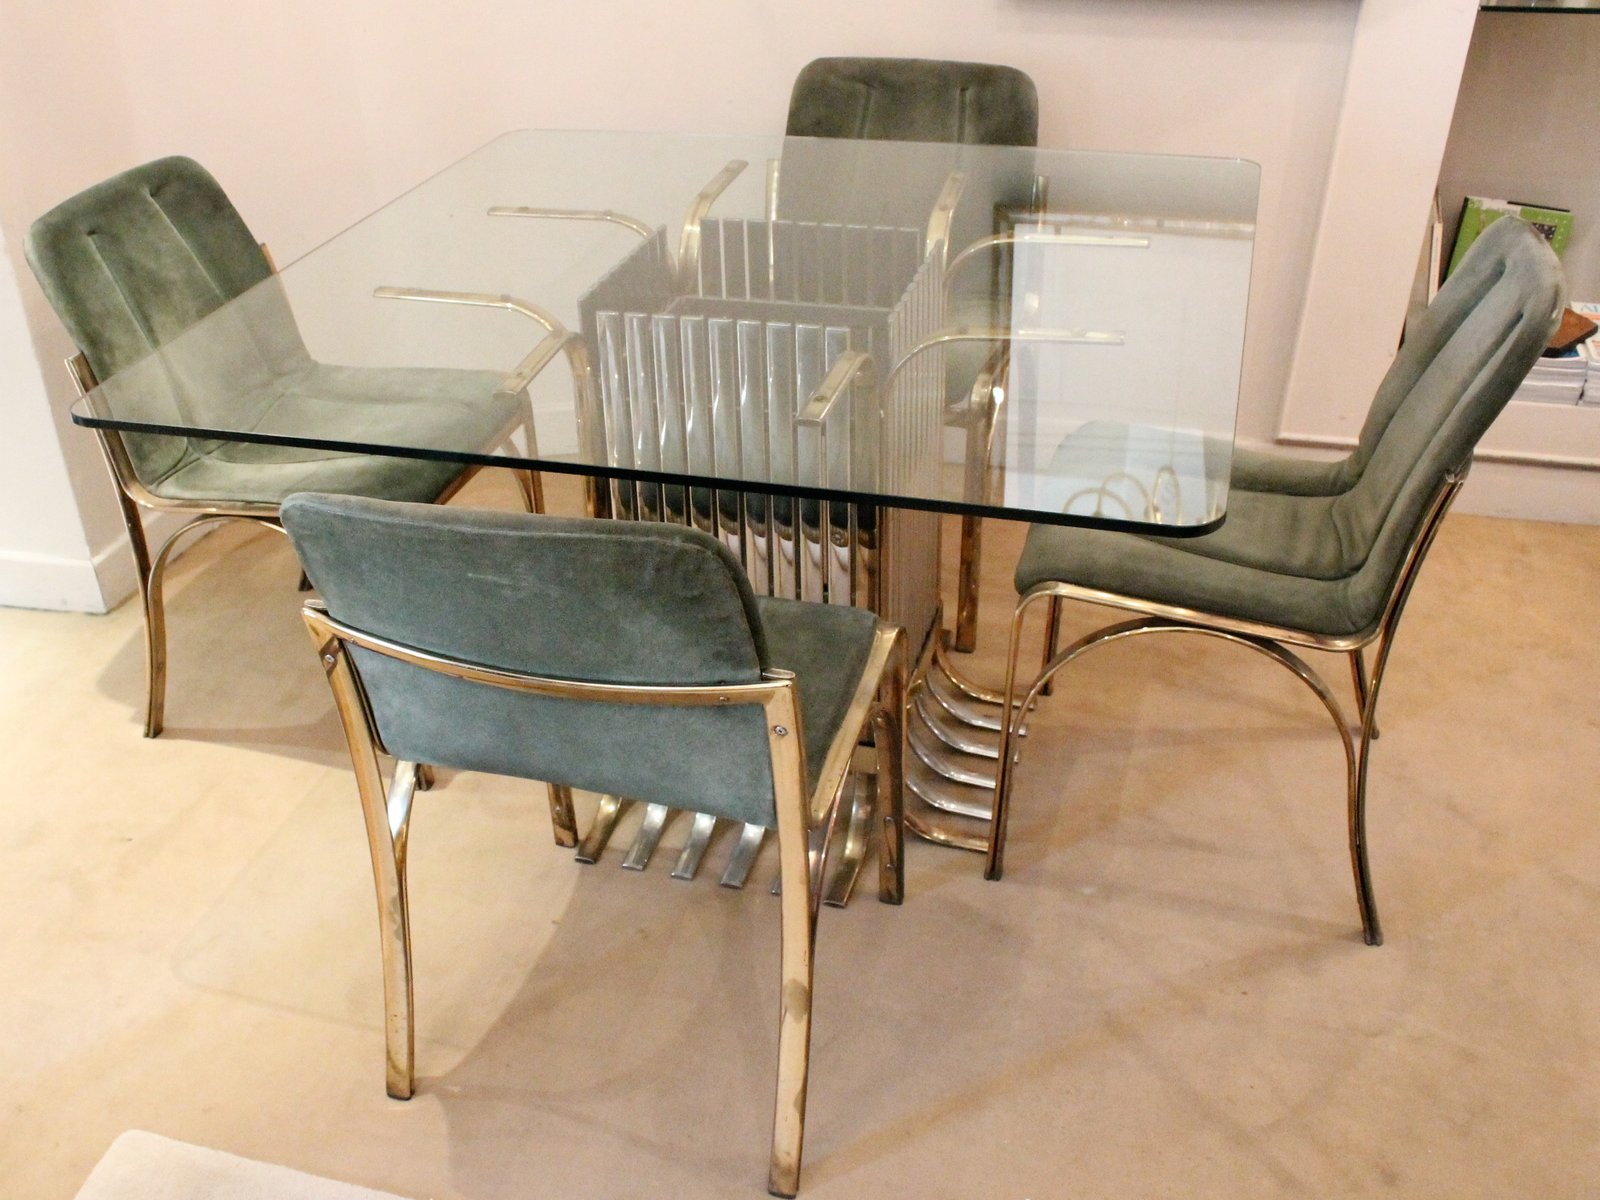 Italian Glass Dining Table With Four Chairs, 1970 25. Price: $2,726.00  Regular Price: $2,971.00